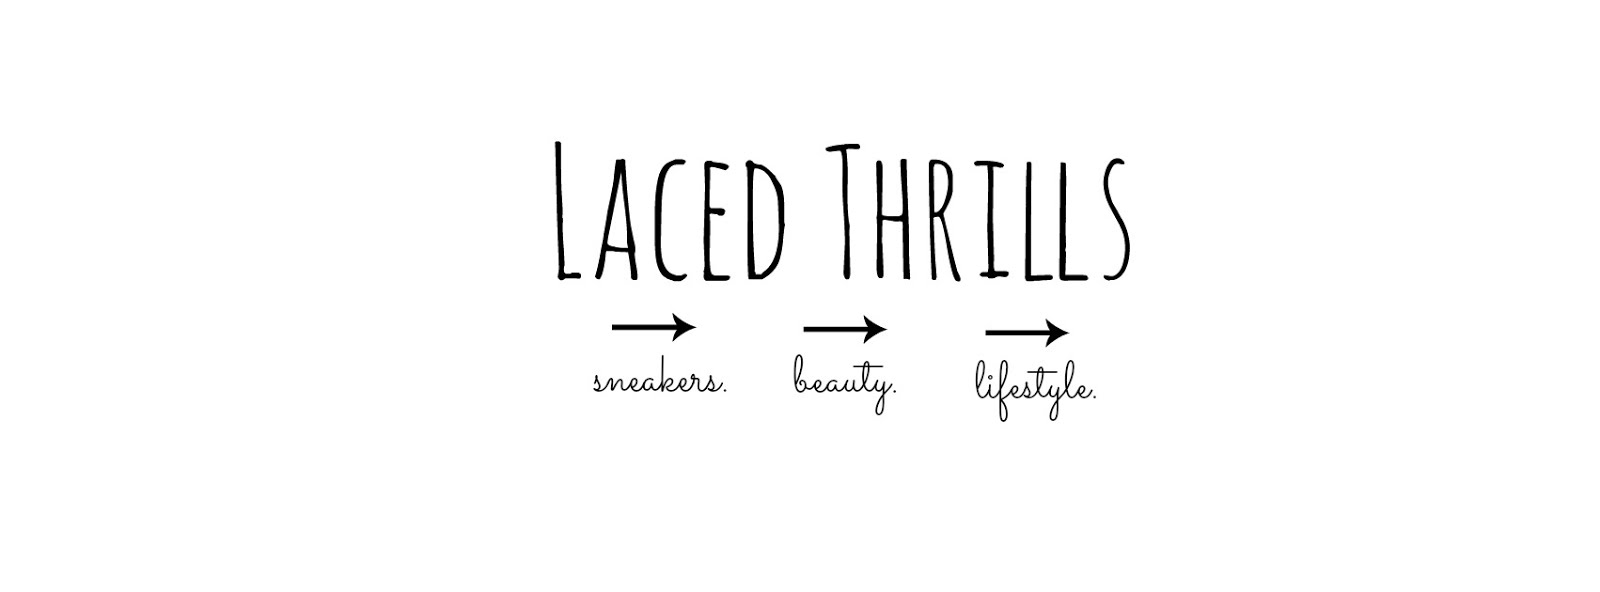 Laced Thrills